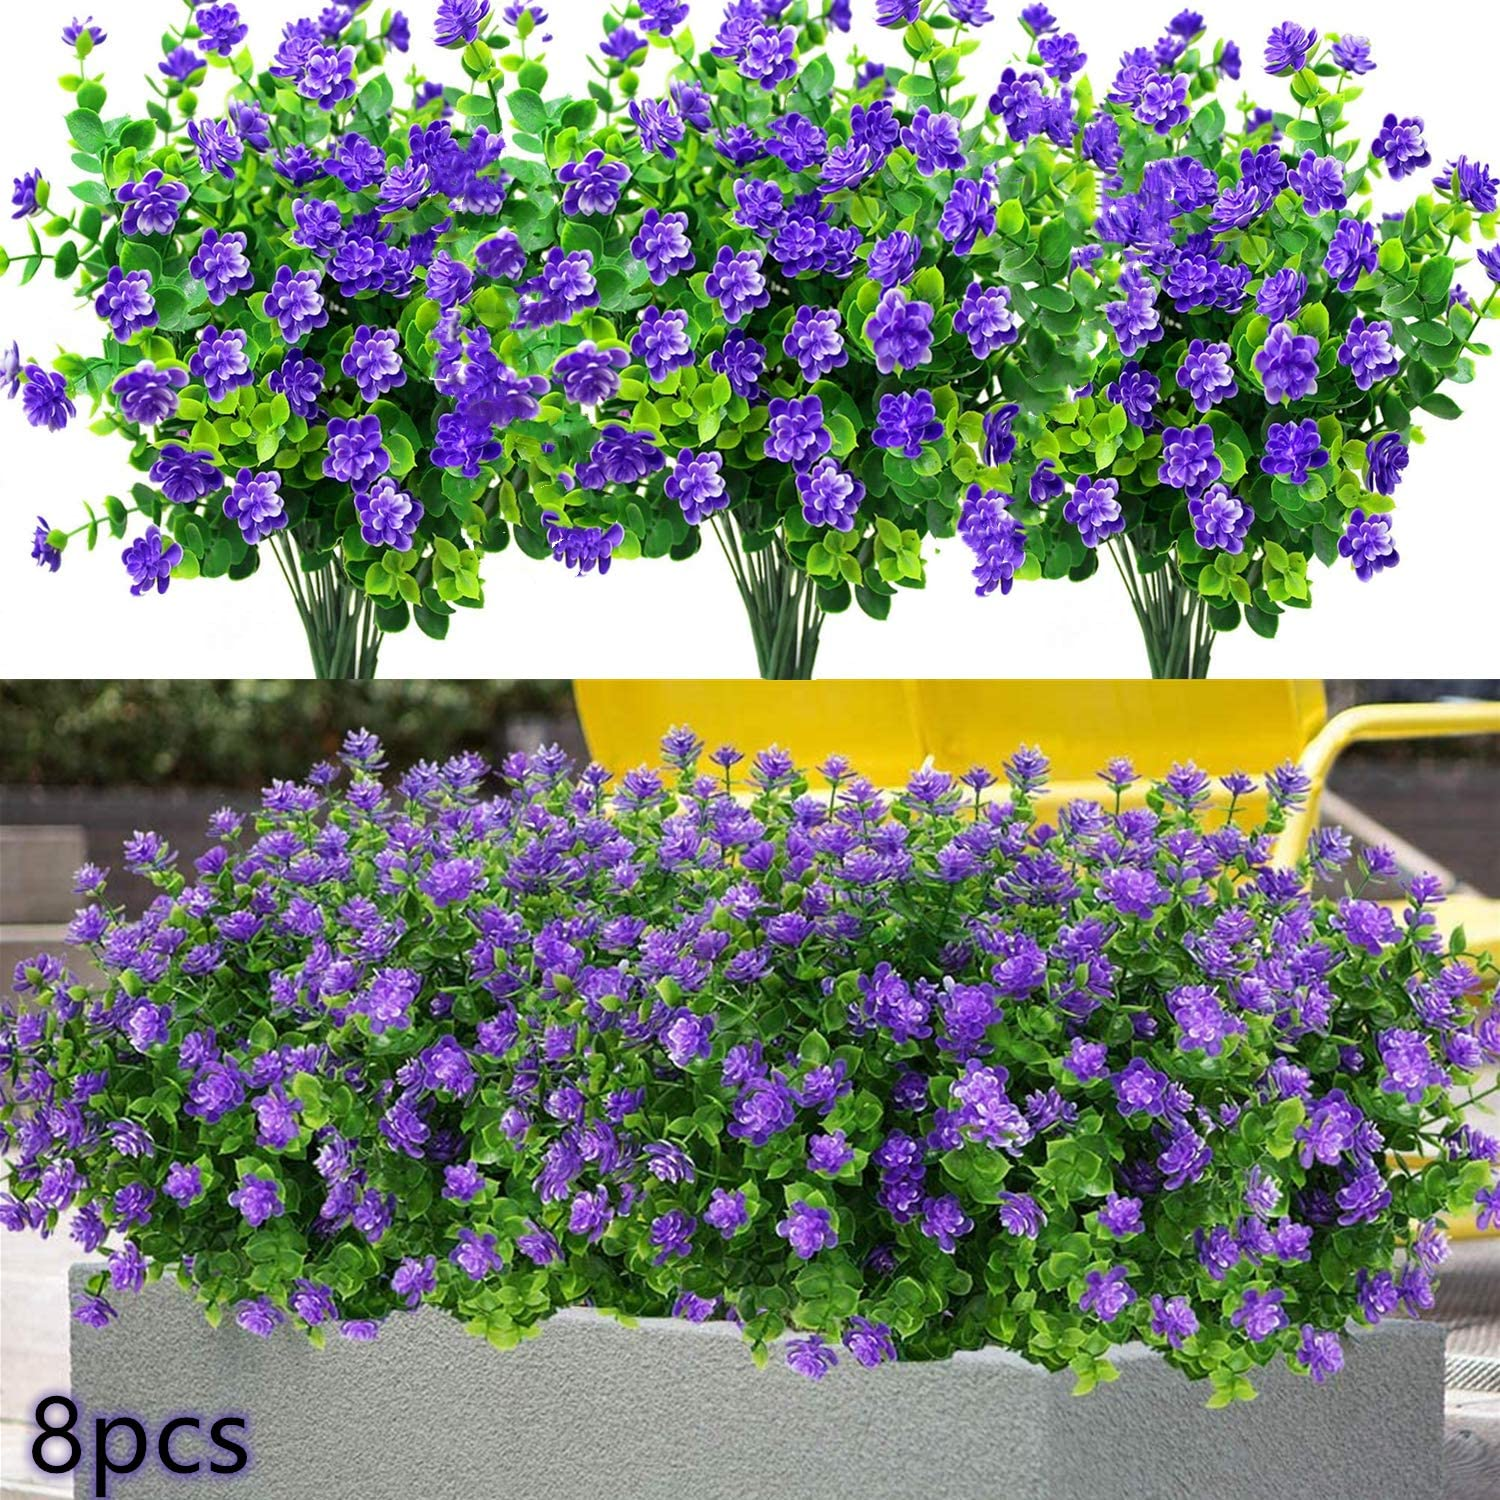 Artificial Fake Flowers Outdoor, 8pcs Plastic Flowers UV Resistant Faux Plants for Indoor Outside Hanging Home Porch Window Wedding Office Garden Decor (Purple)